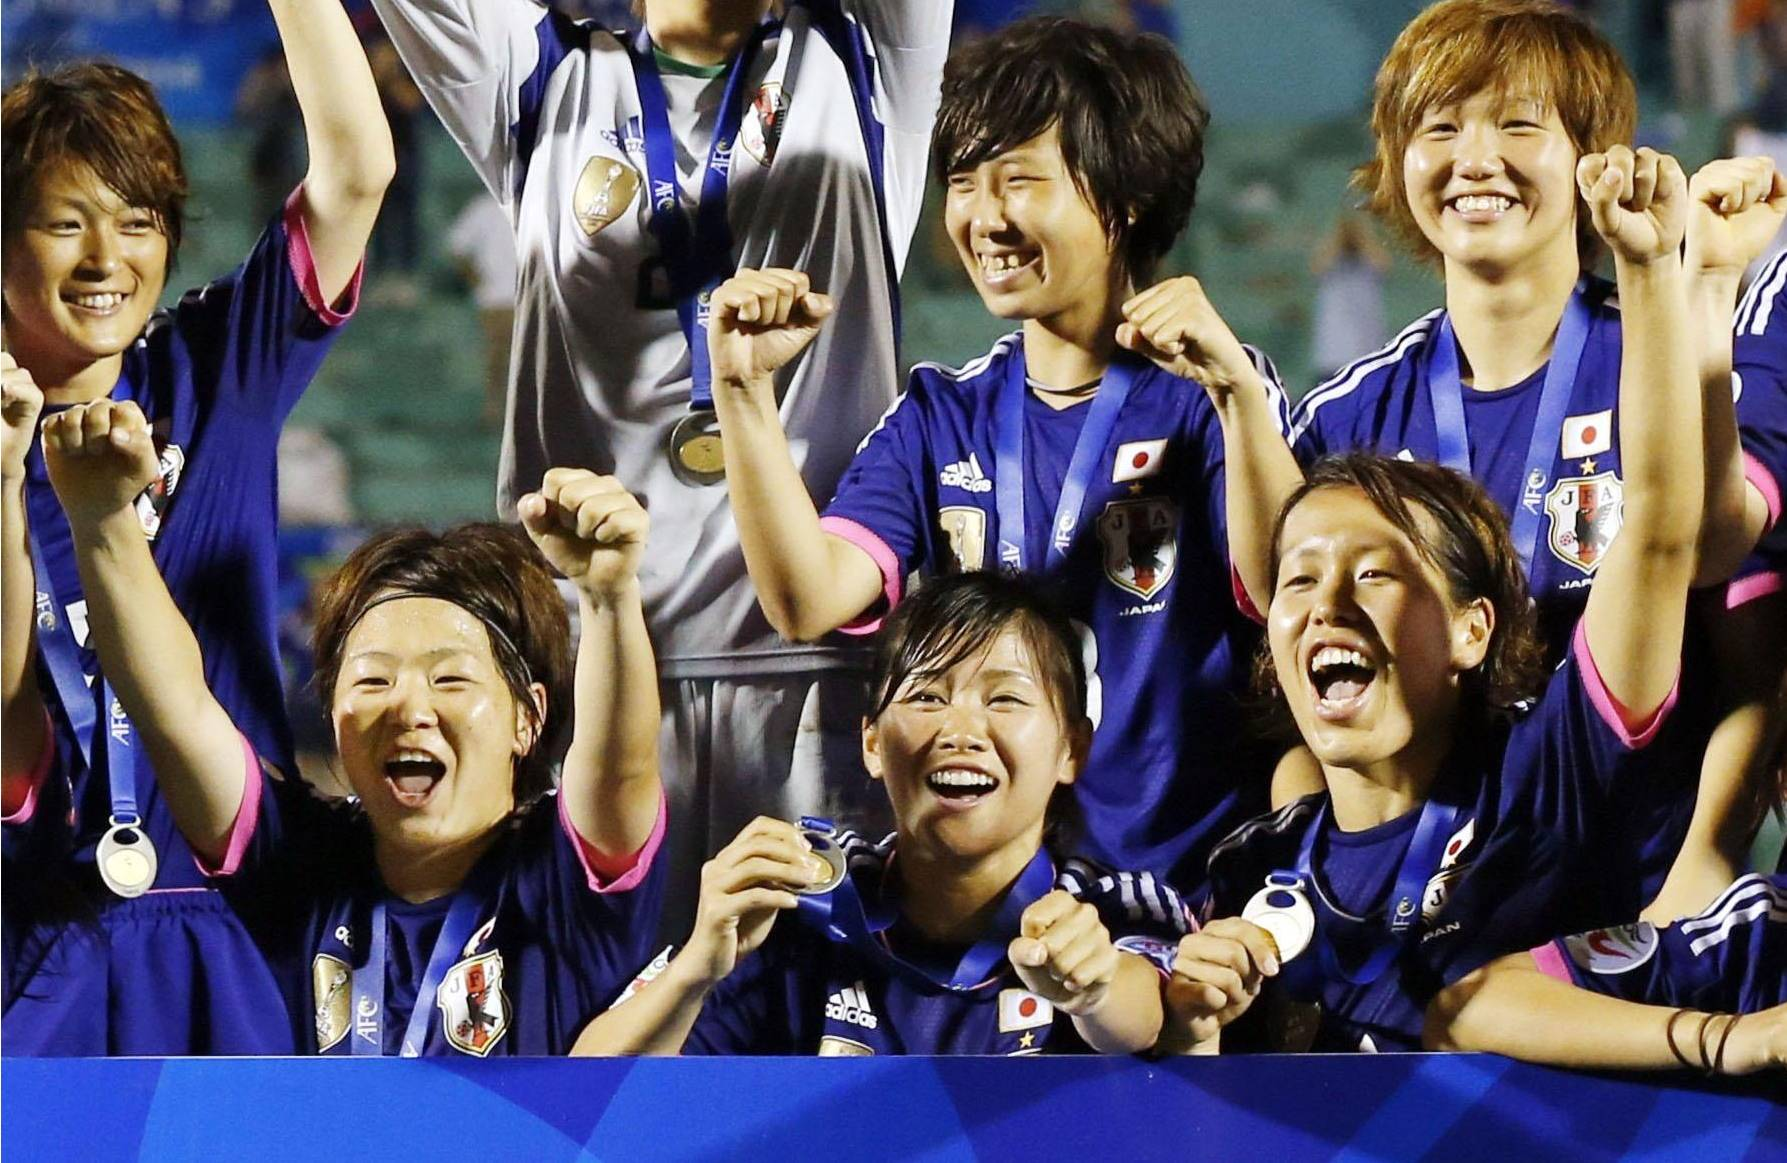 Thrill of victory: Members of Nadeshiko Japan celebrate after beating Australia 1-0 on Sunday to win their first Women's Asian Cup. | KYODO